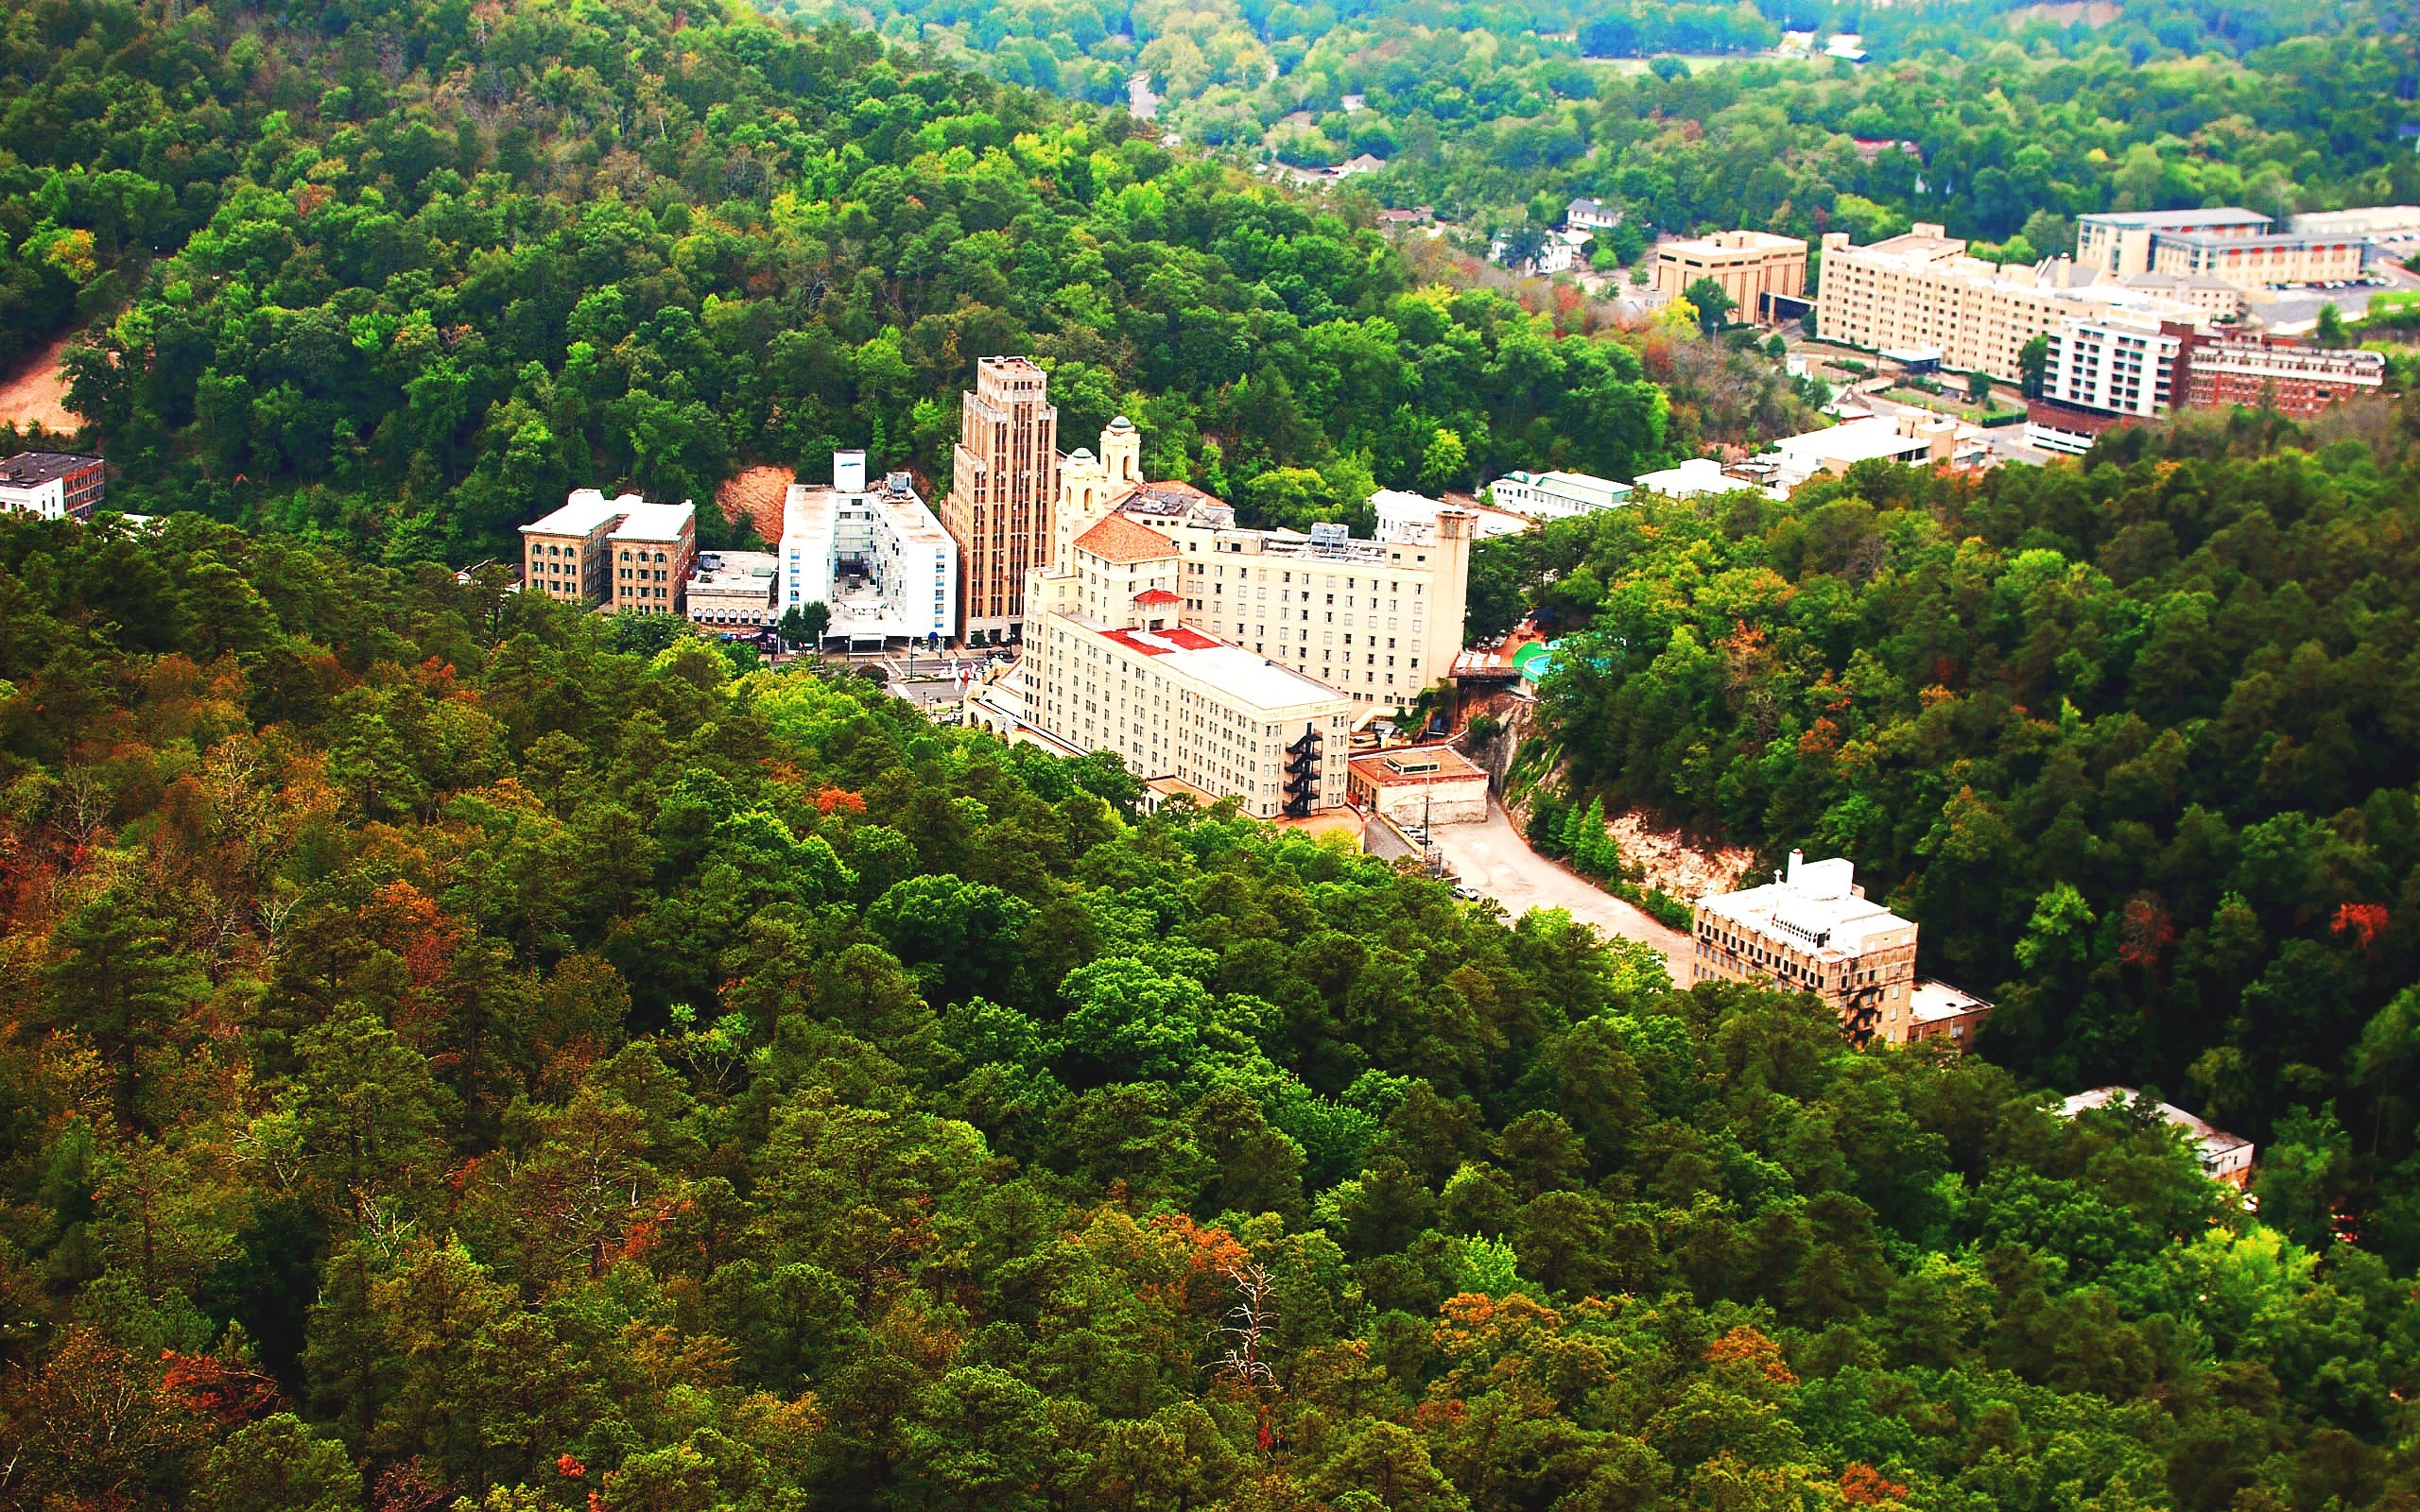 2560x1600 hot springs arkansas | Downtown Hot Springs, Arkansas Desktop Wallpapers  and Backgrounds